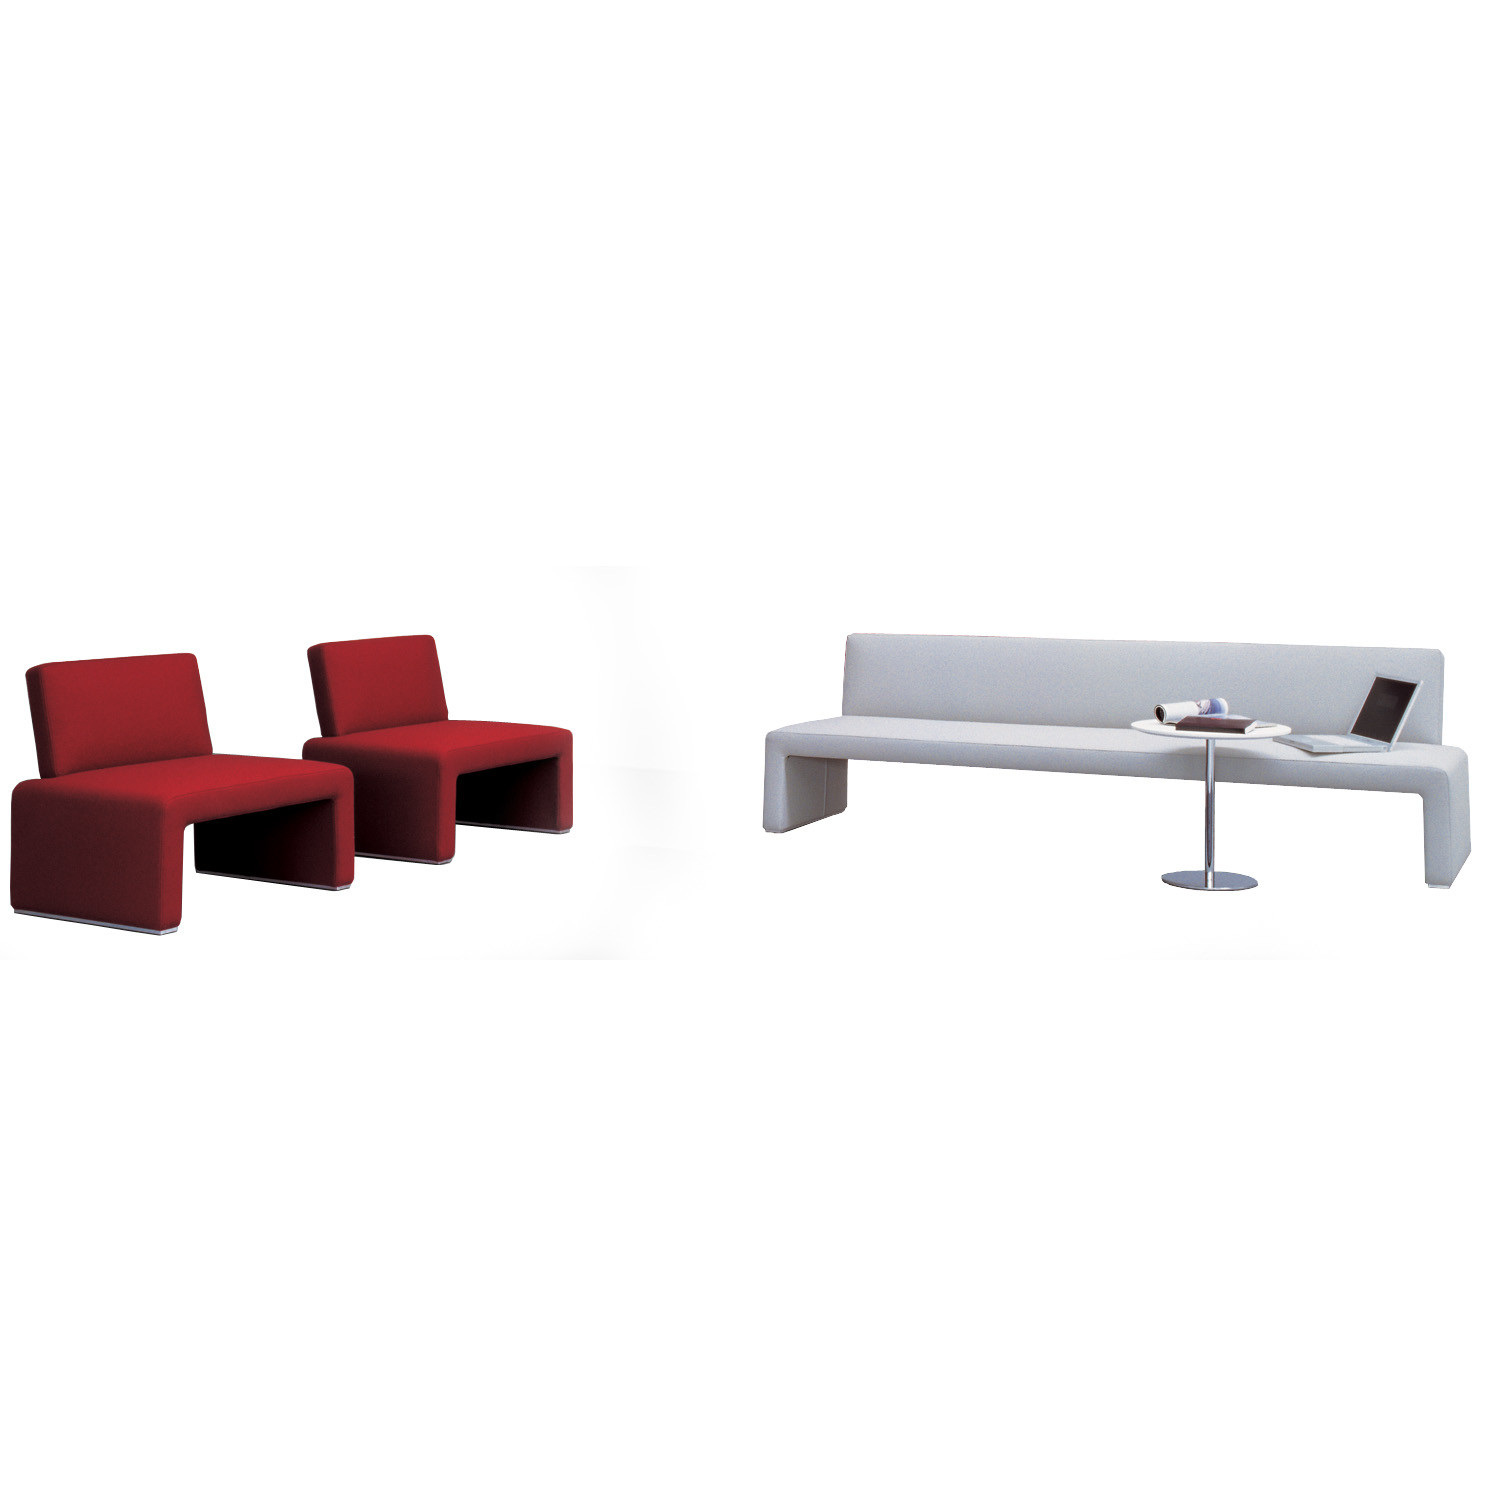 Labanca Sofa Bench and Armchair